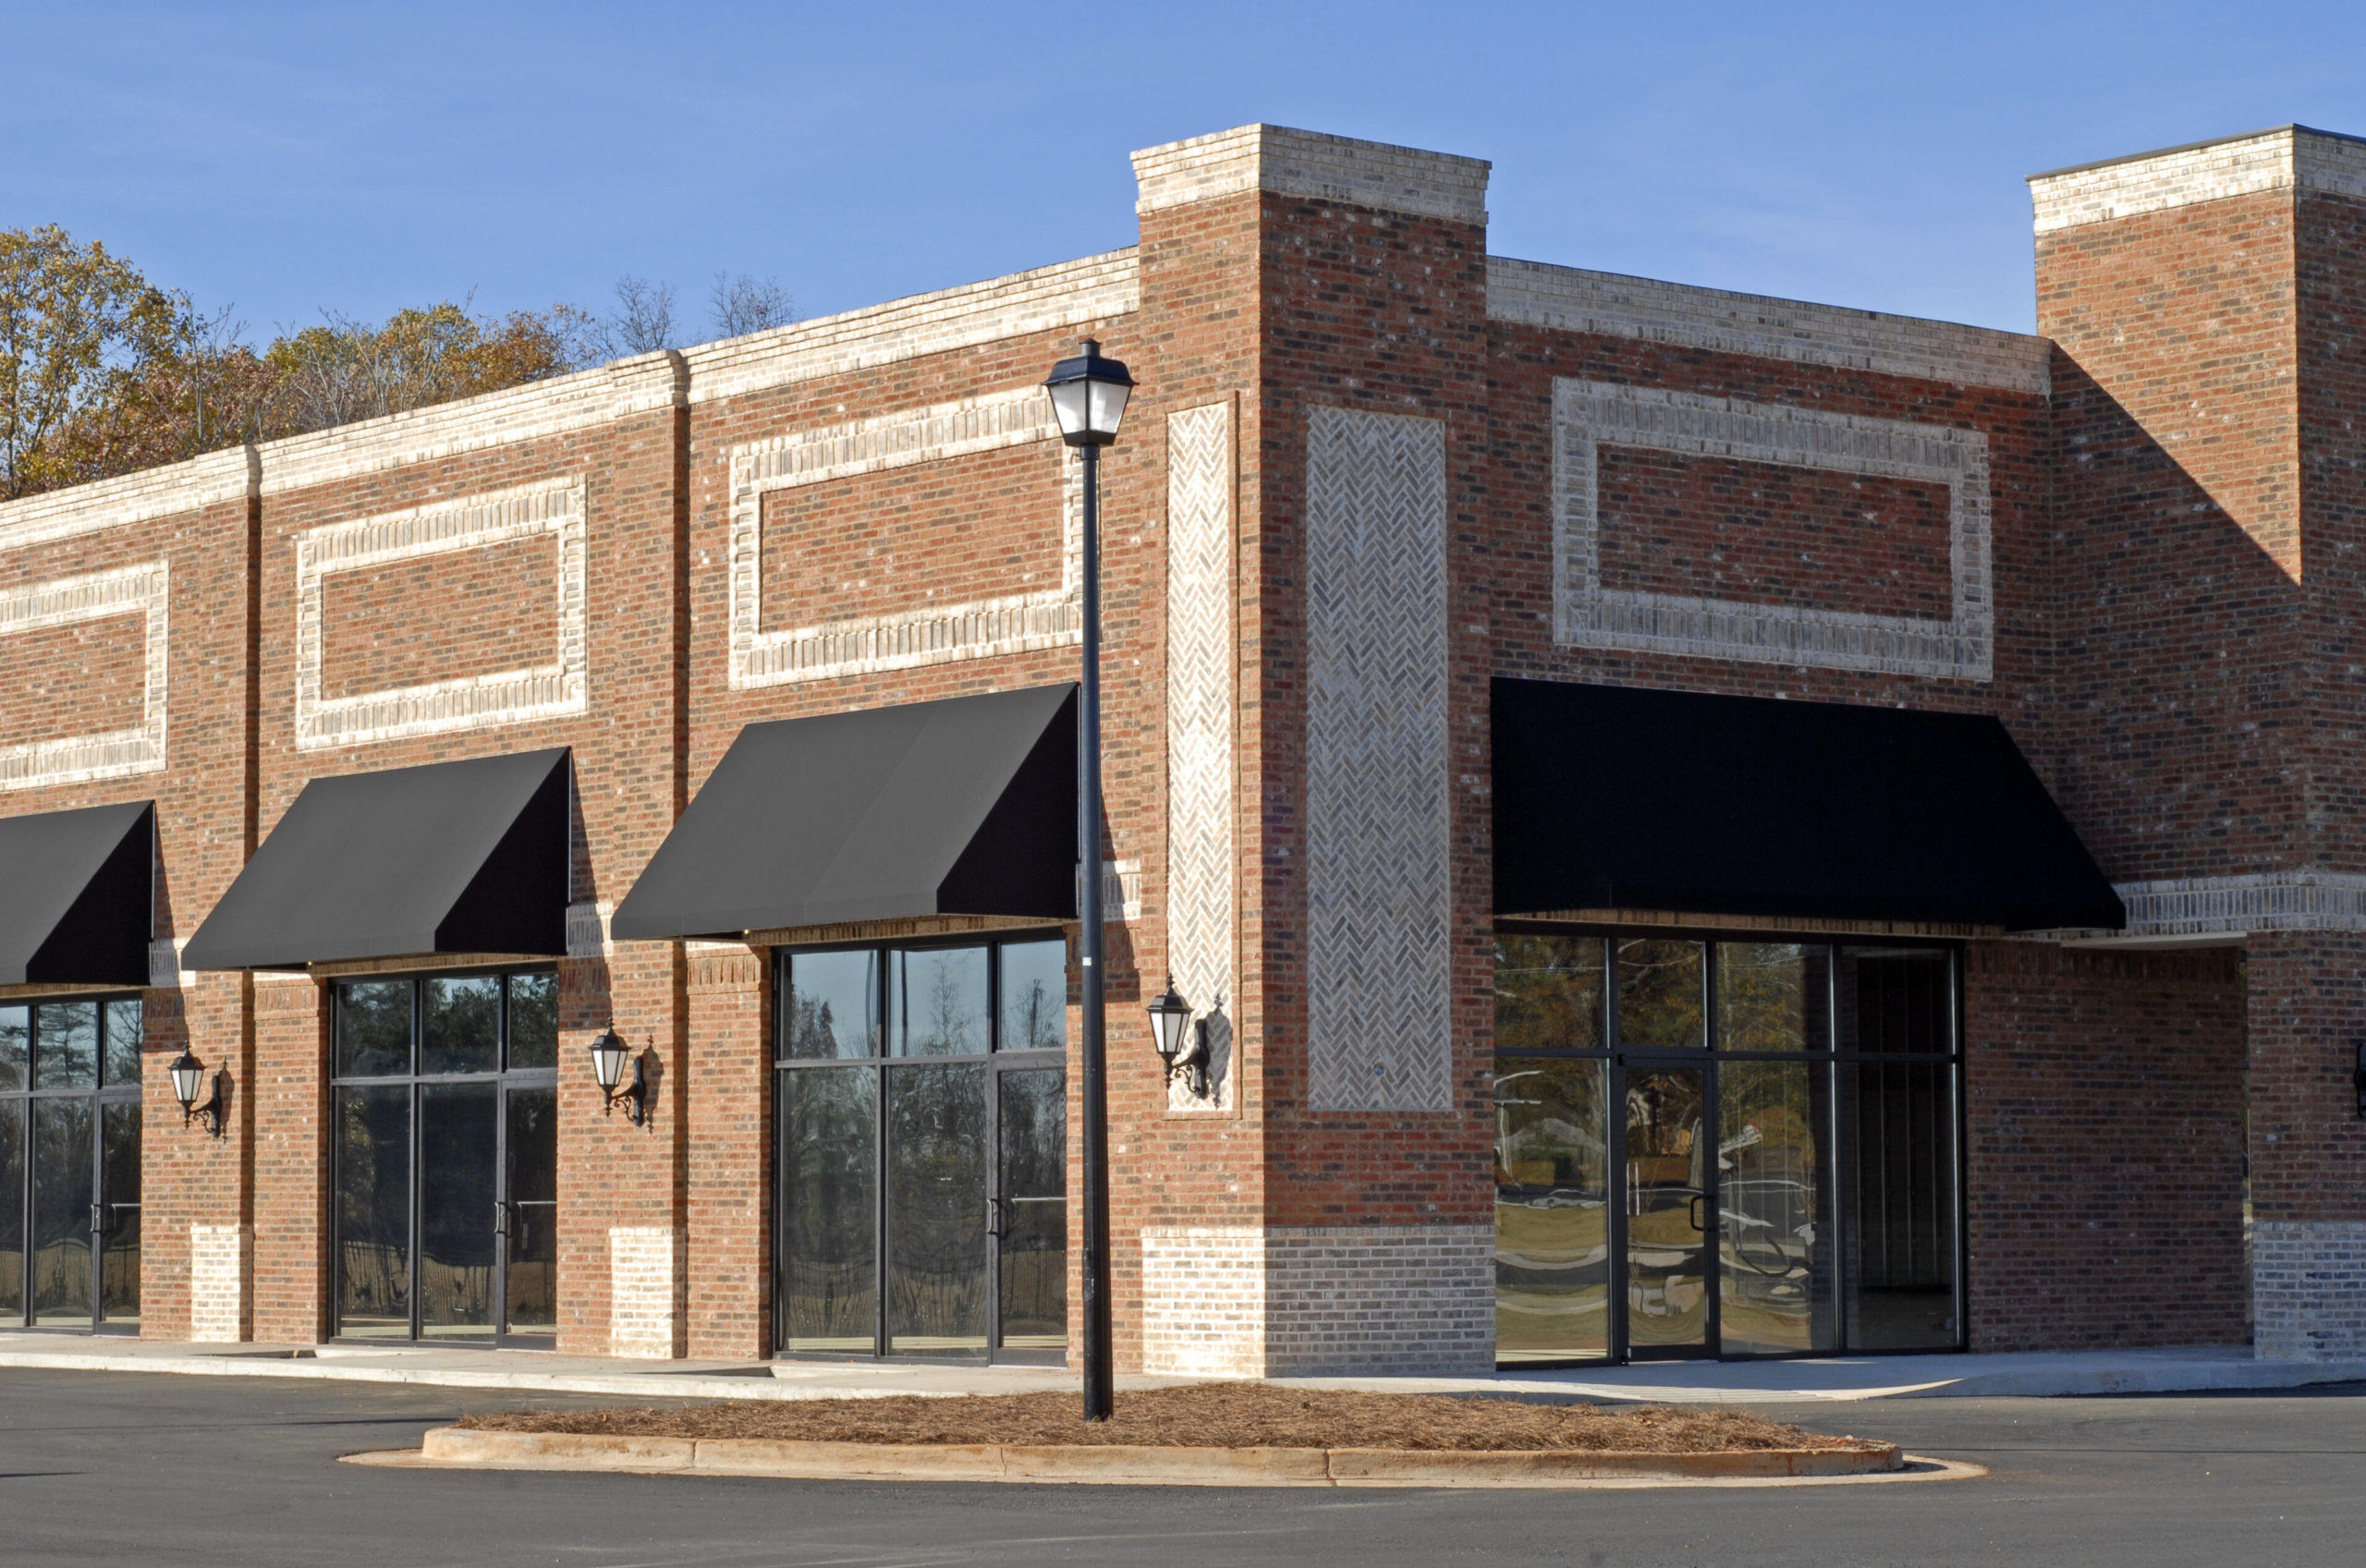 From restaurants to shopping centers, maintaining clean exterior walls free of dirt, grime and drainage stains says a lot about your stability and level of success. Don't let unsightly coverings on or around your property give customers or potential customers a bad impression of your business.